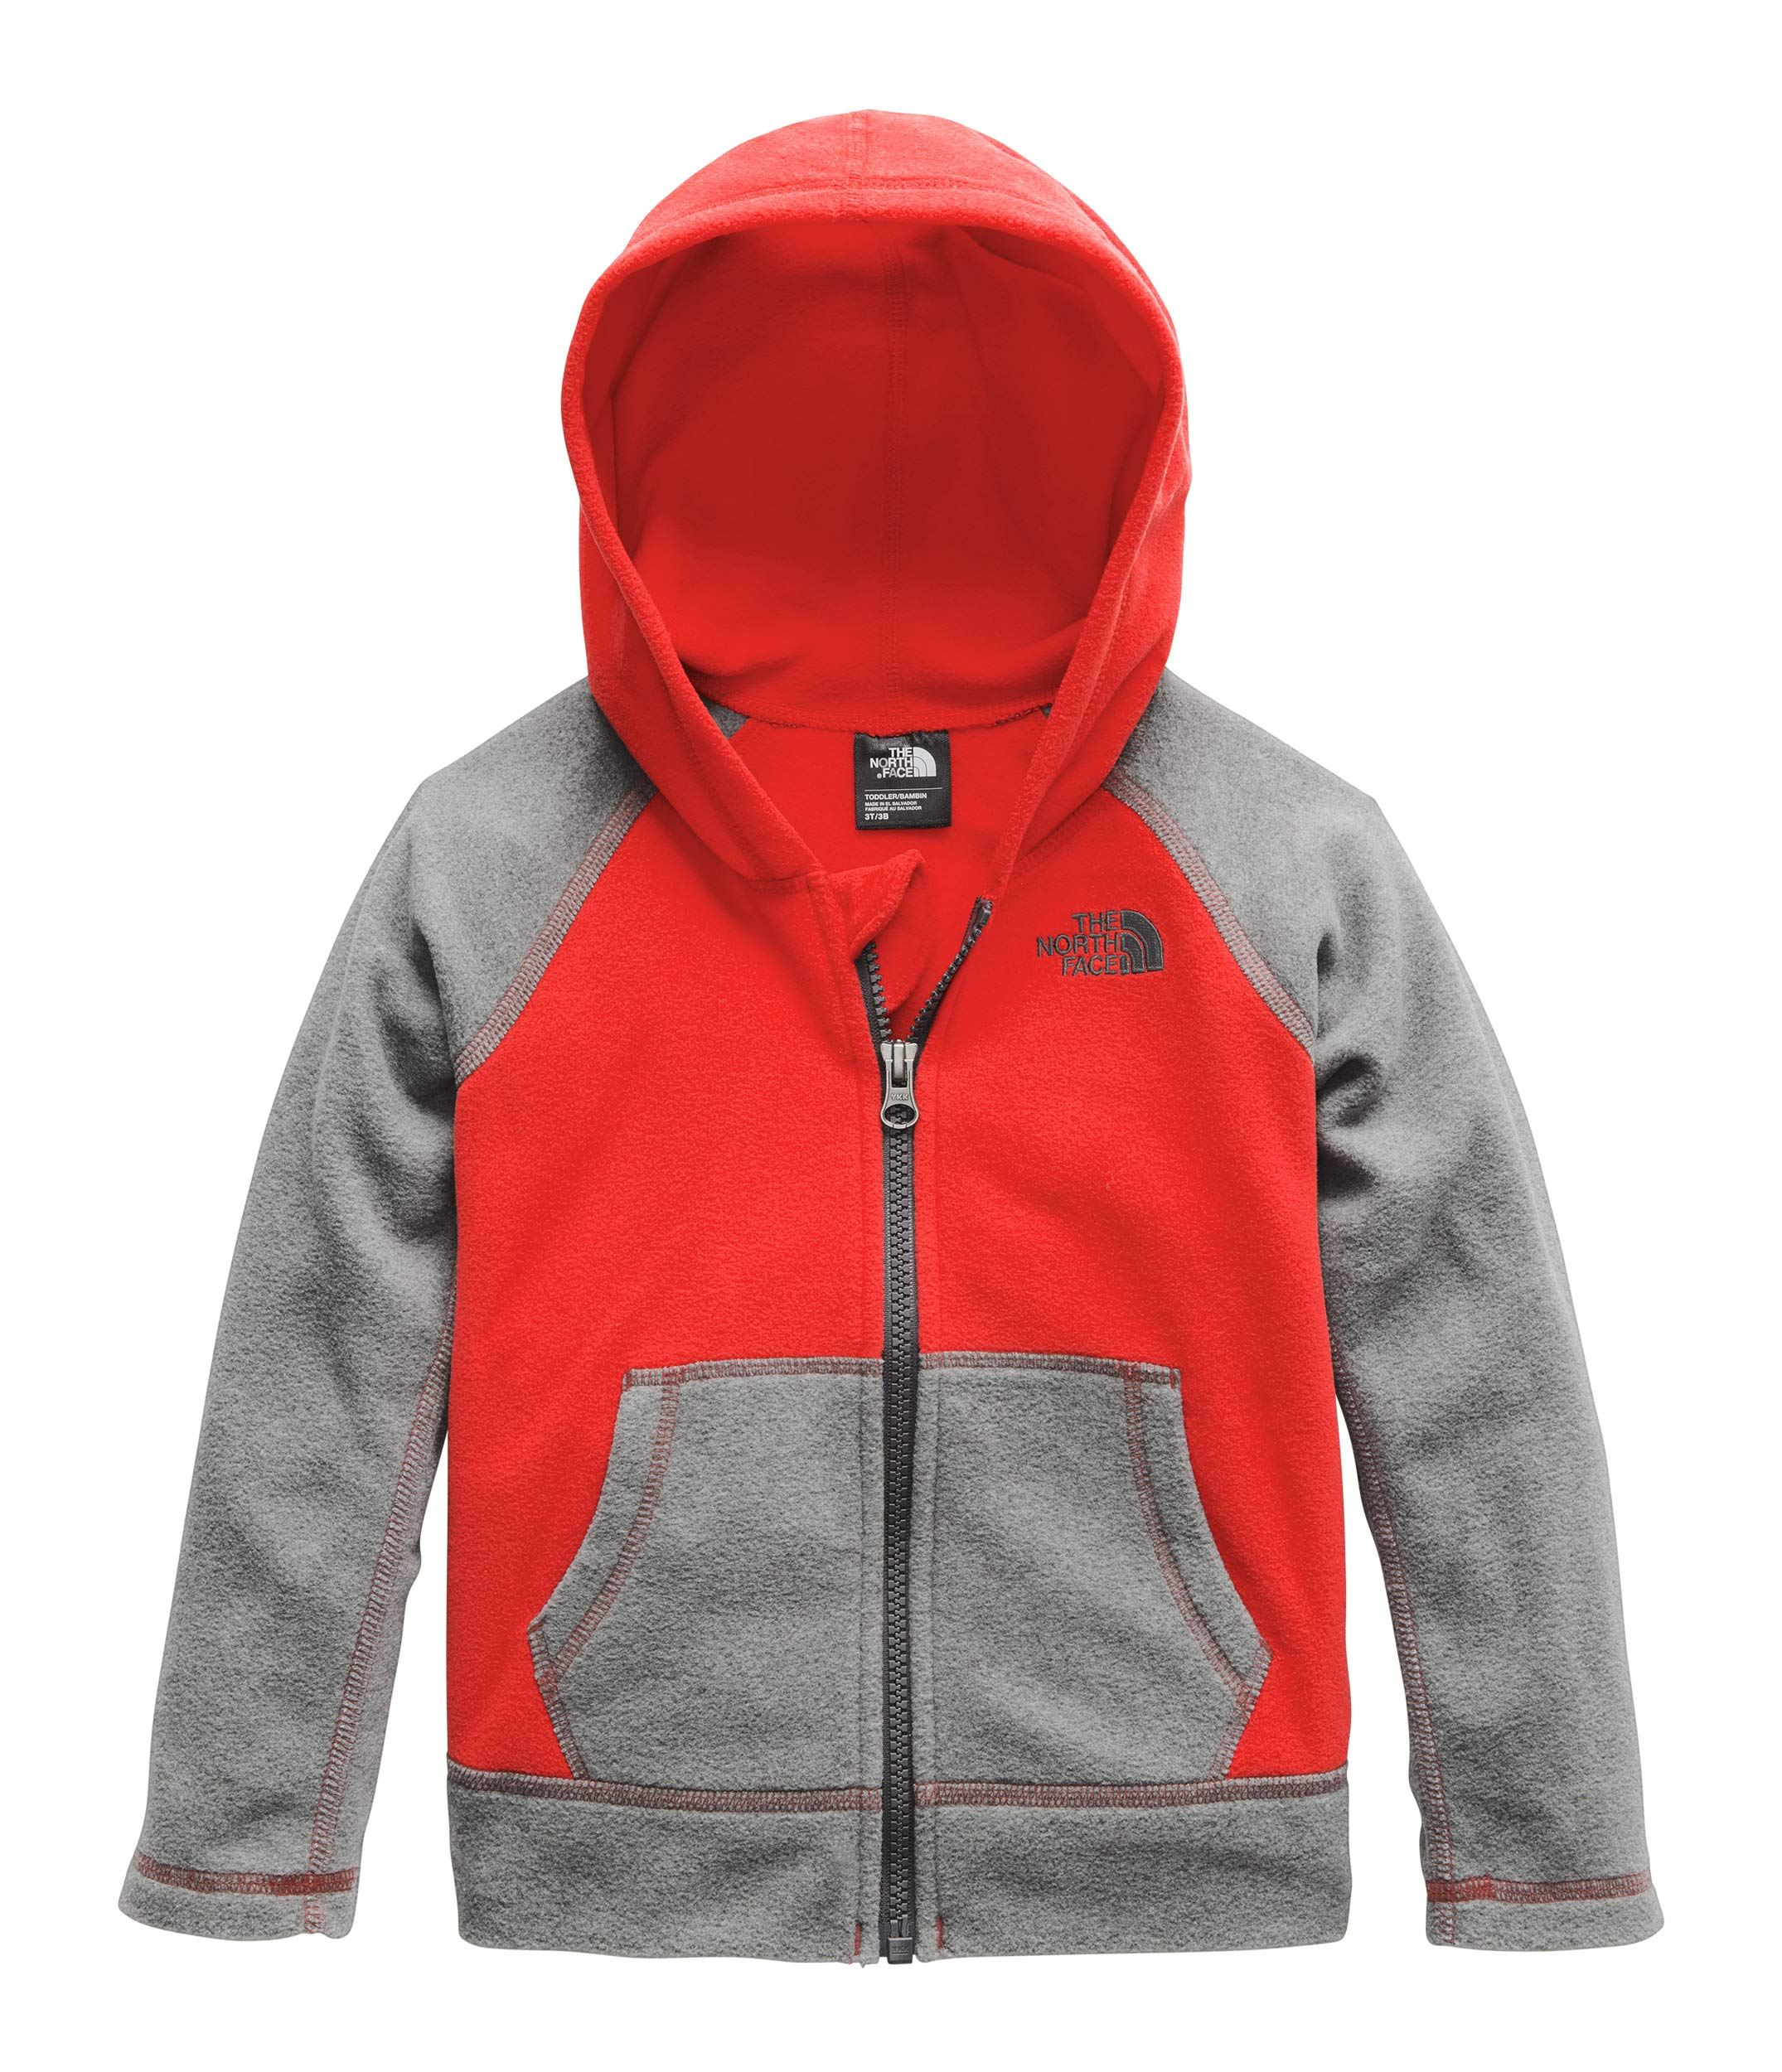 The North Face Kids Baby Boy's Glacier Full Zip Hoodie (Toddler) Fiery Red 5T